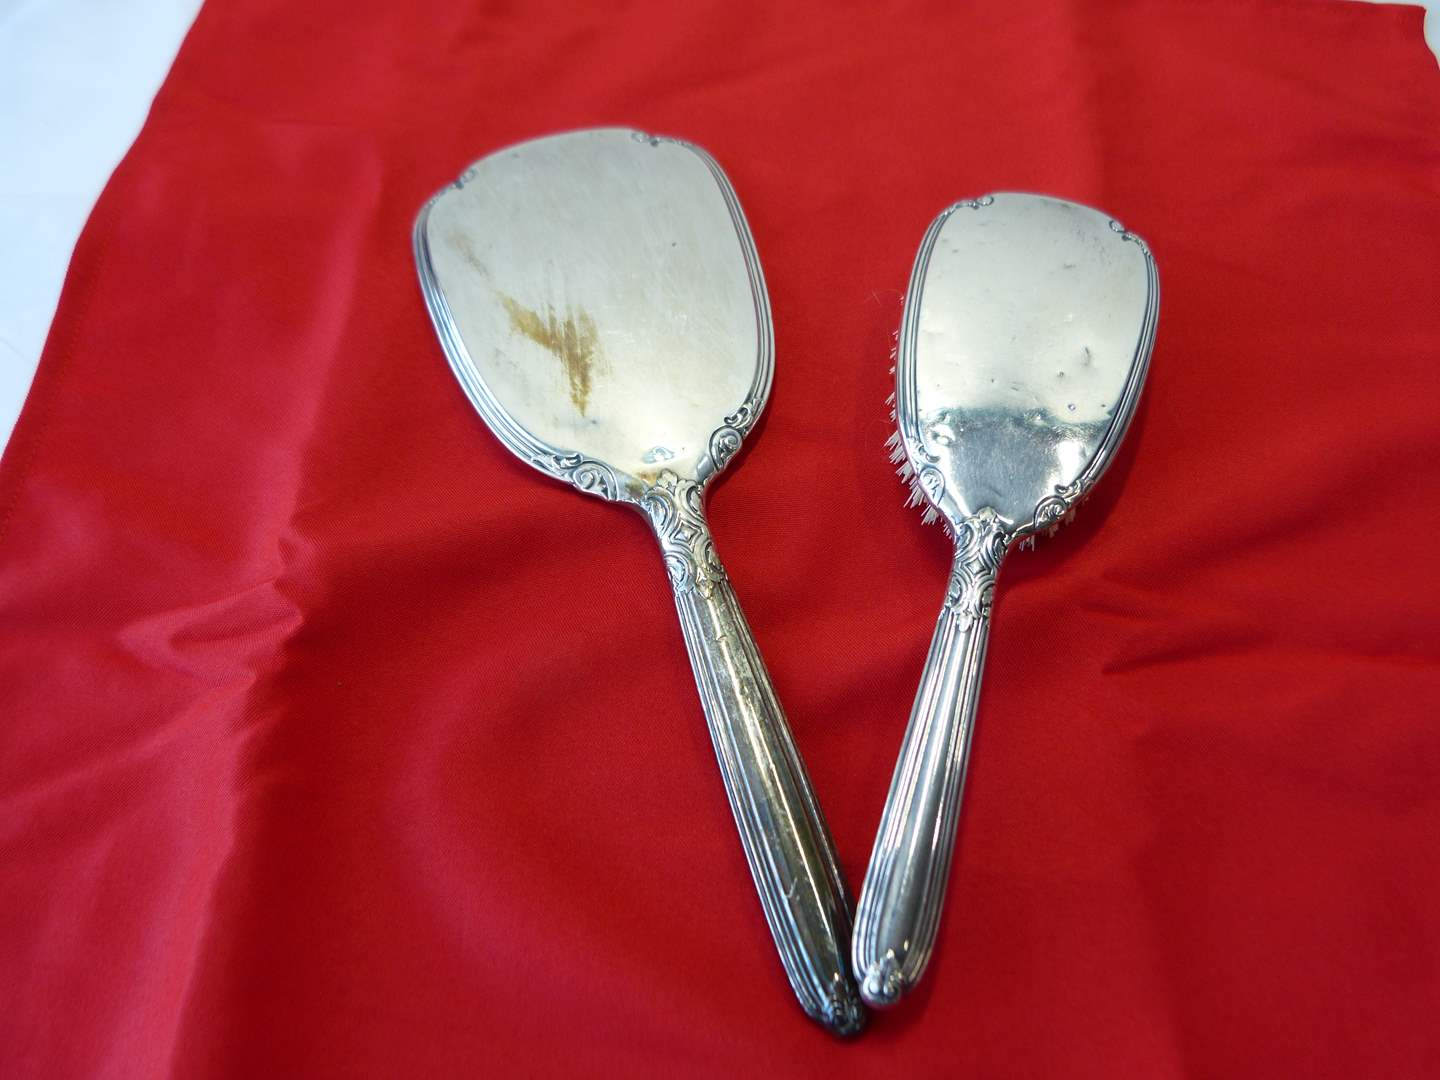 Lot # 4  Antique STERLING silver mirror & brush (does have some dings consistent with age) (main image)